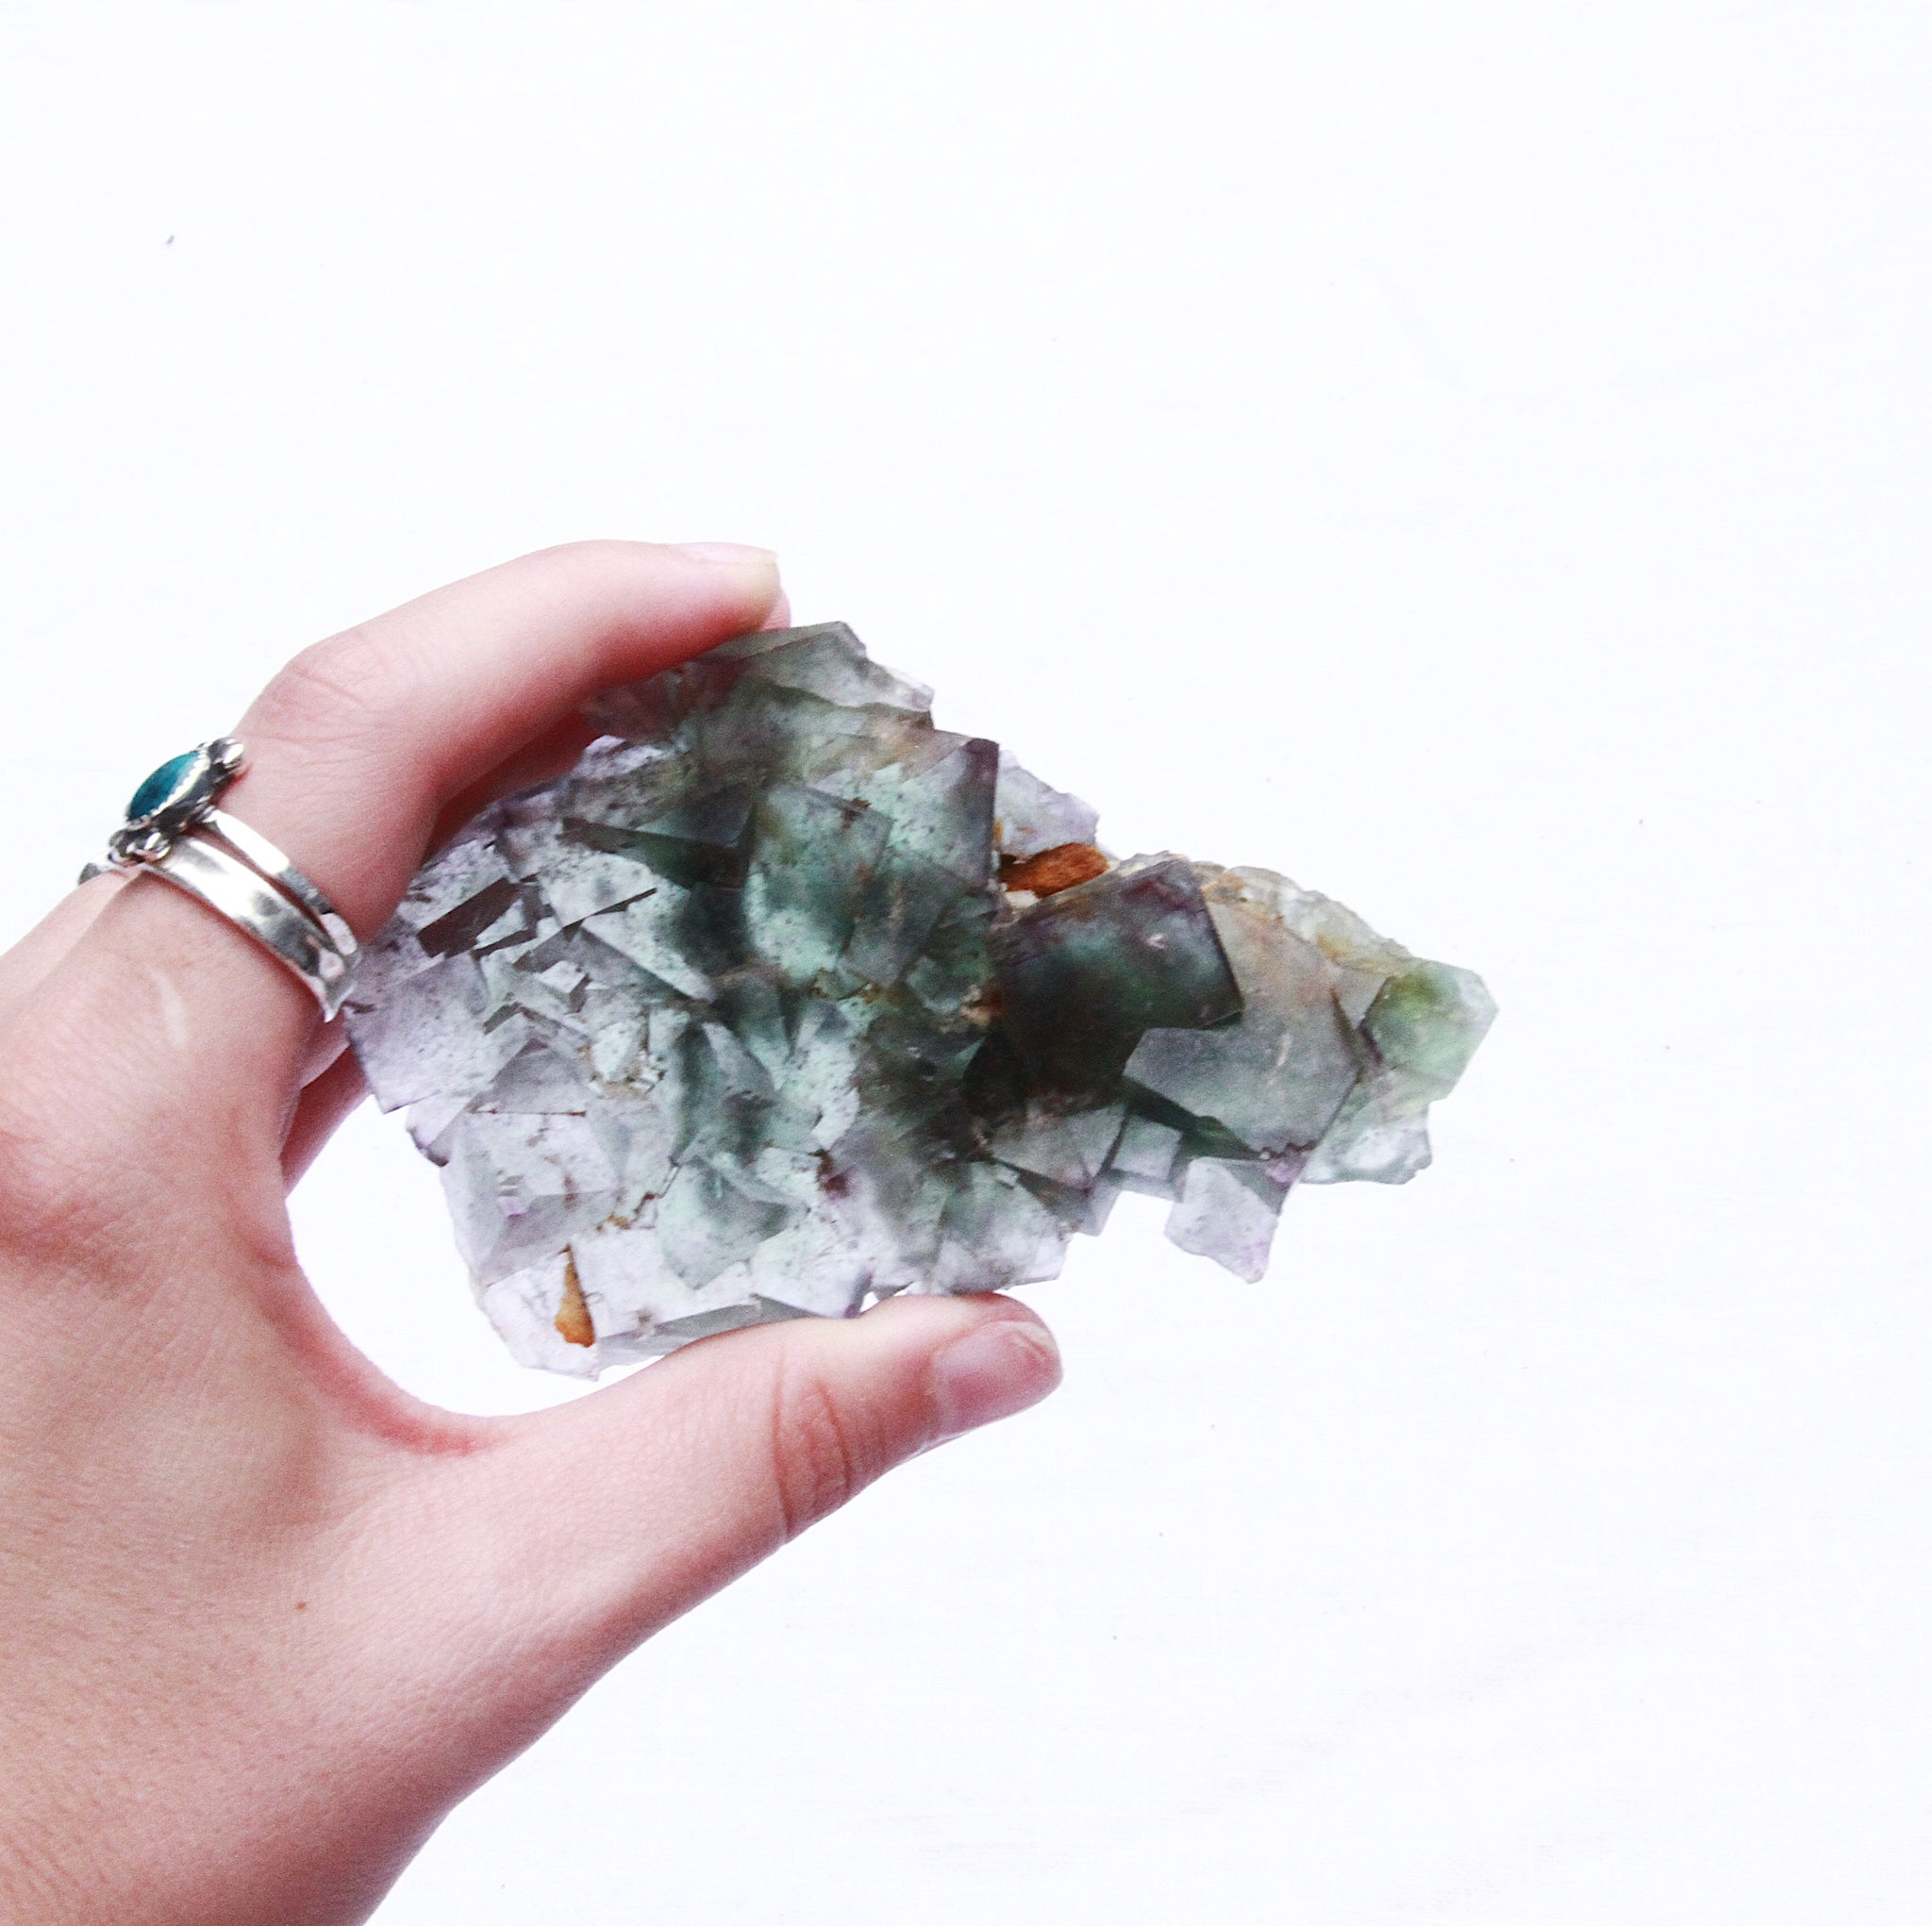 Fluorite Specimens (Choose Your Own)